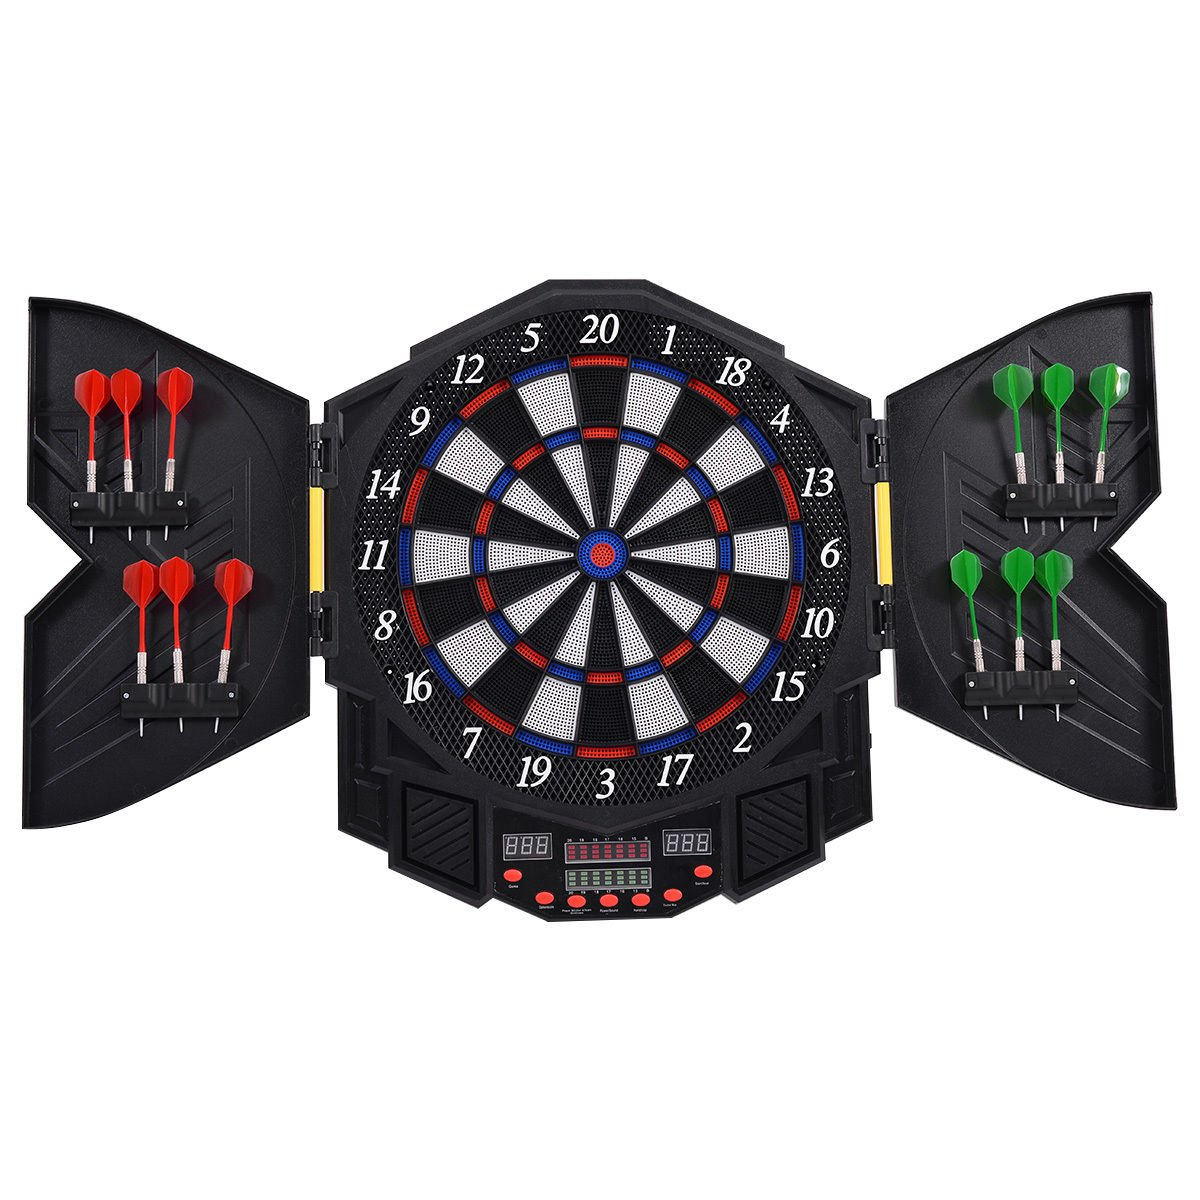 Goplus Professional Electronic Dart Board Cabinet Set Dartboard Game Room LED Display w/ 12 Darts